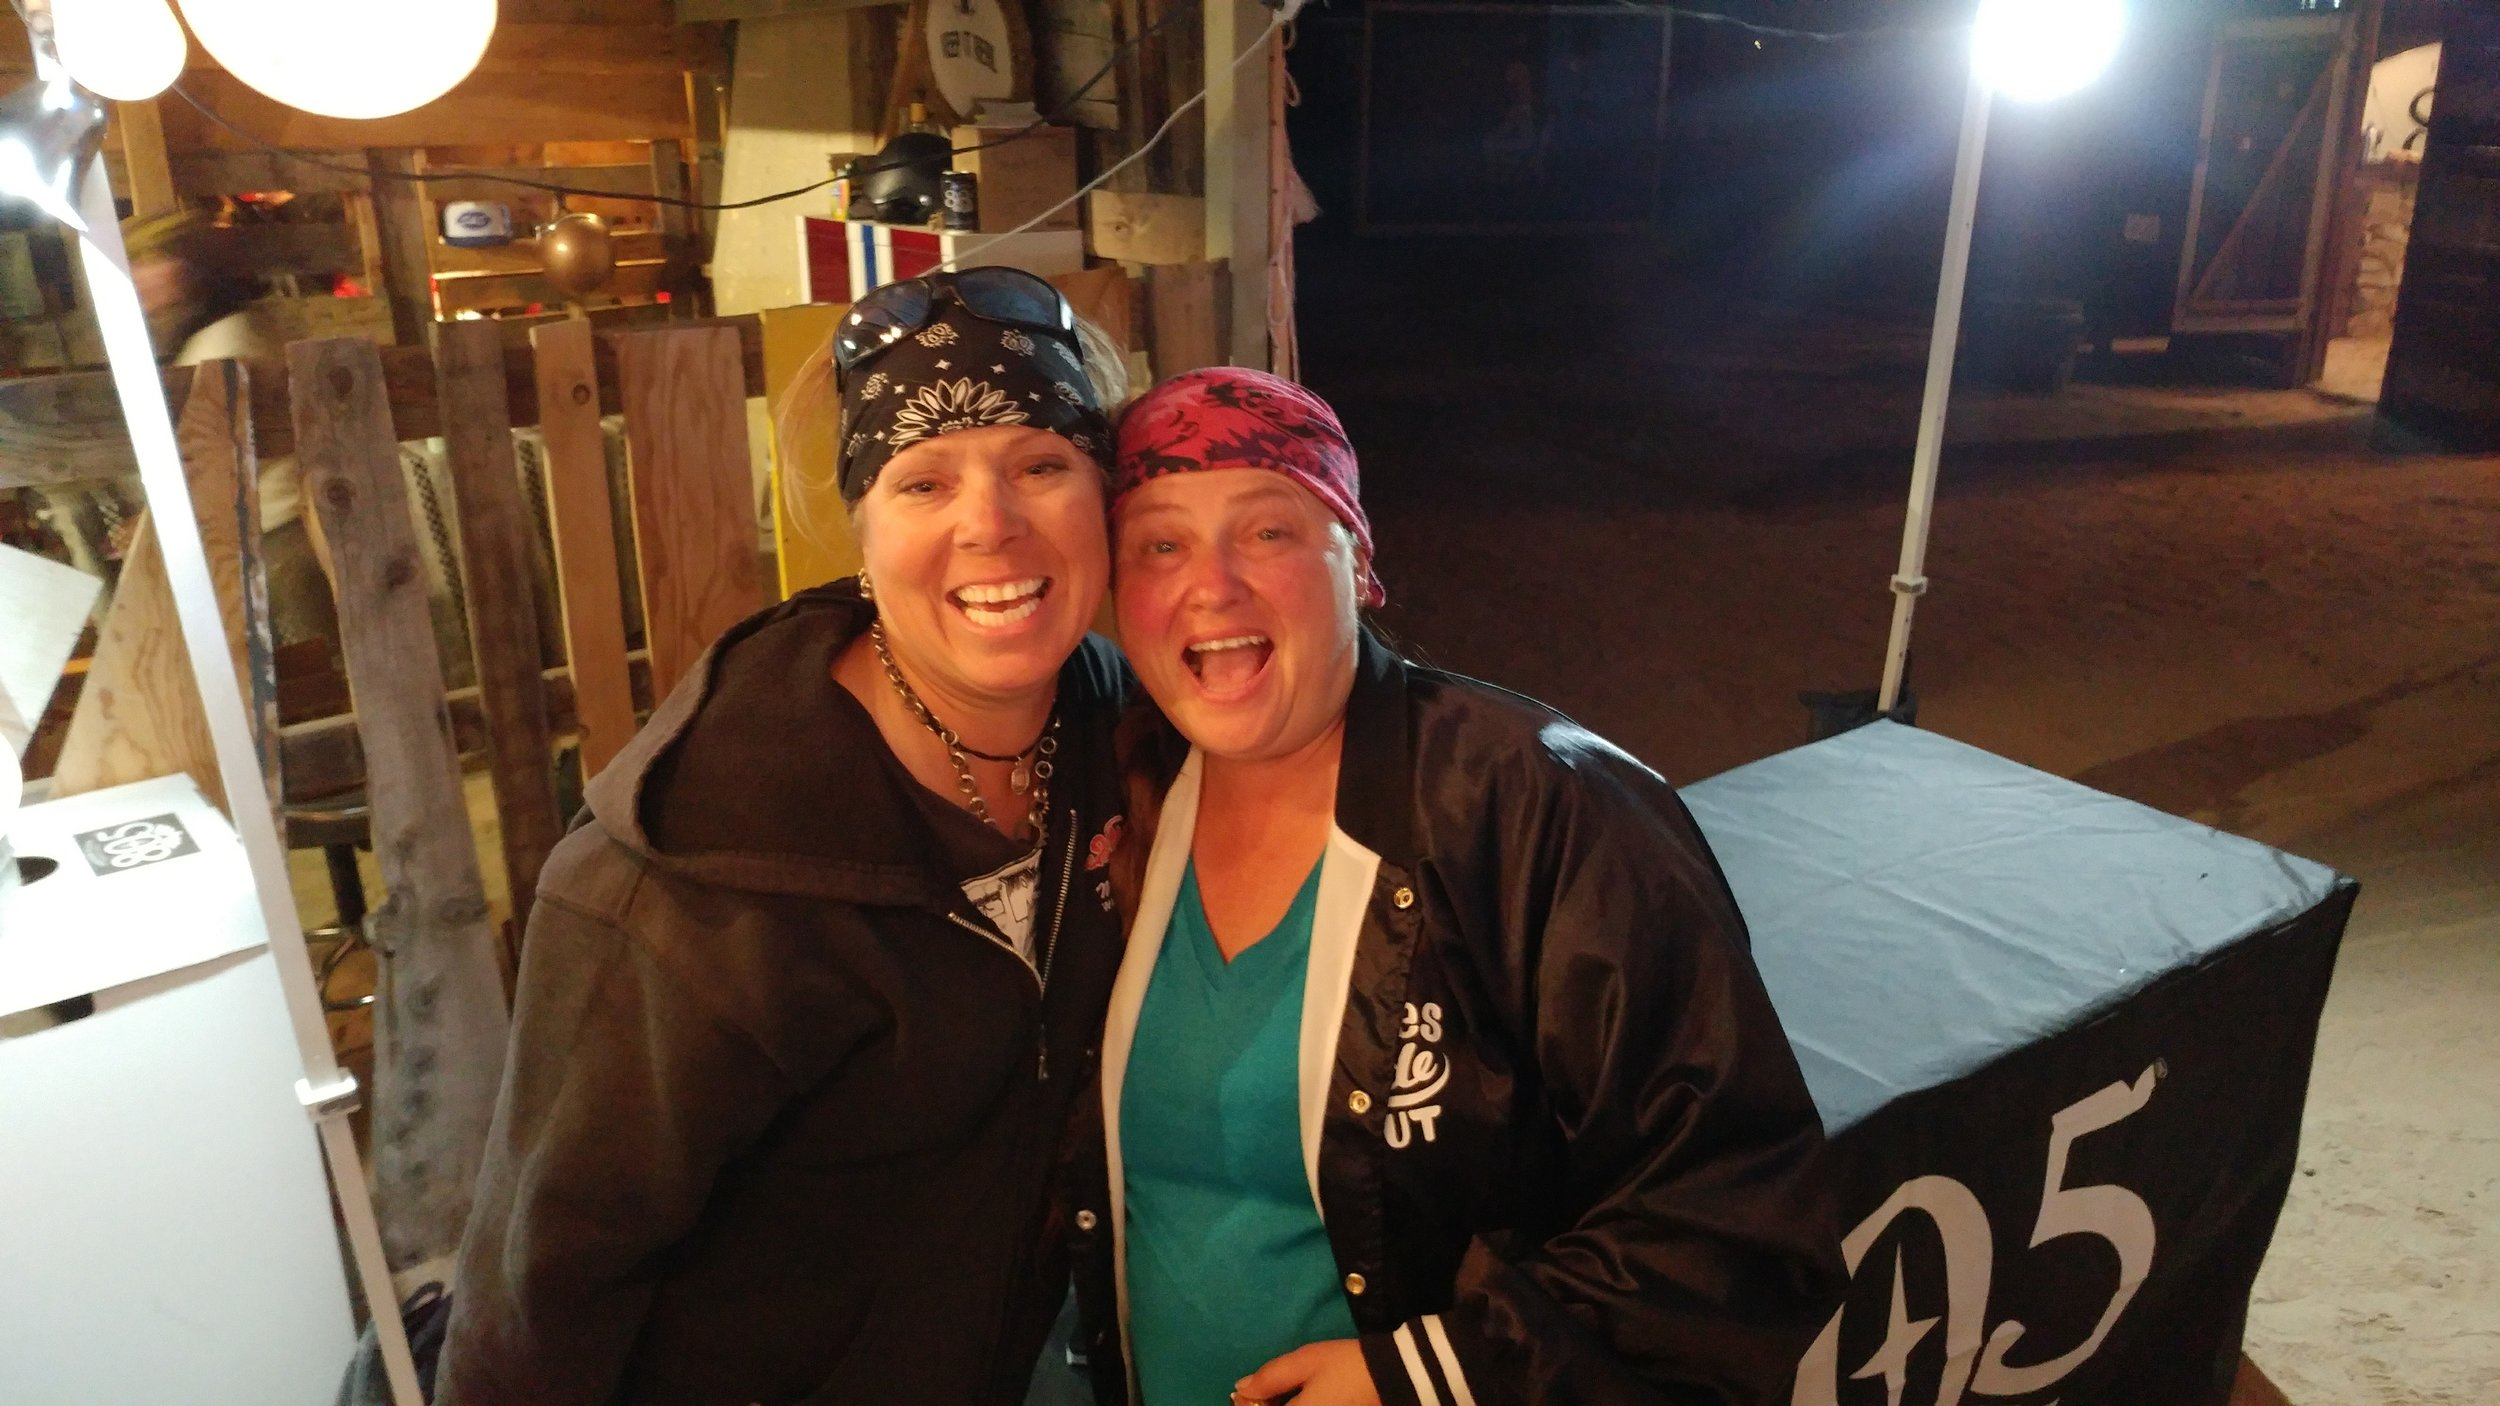 Myself and Melissa – we will meet again!